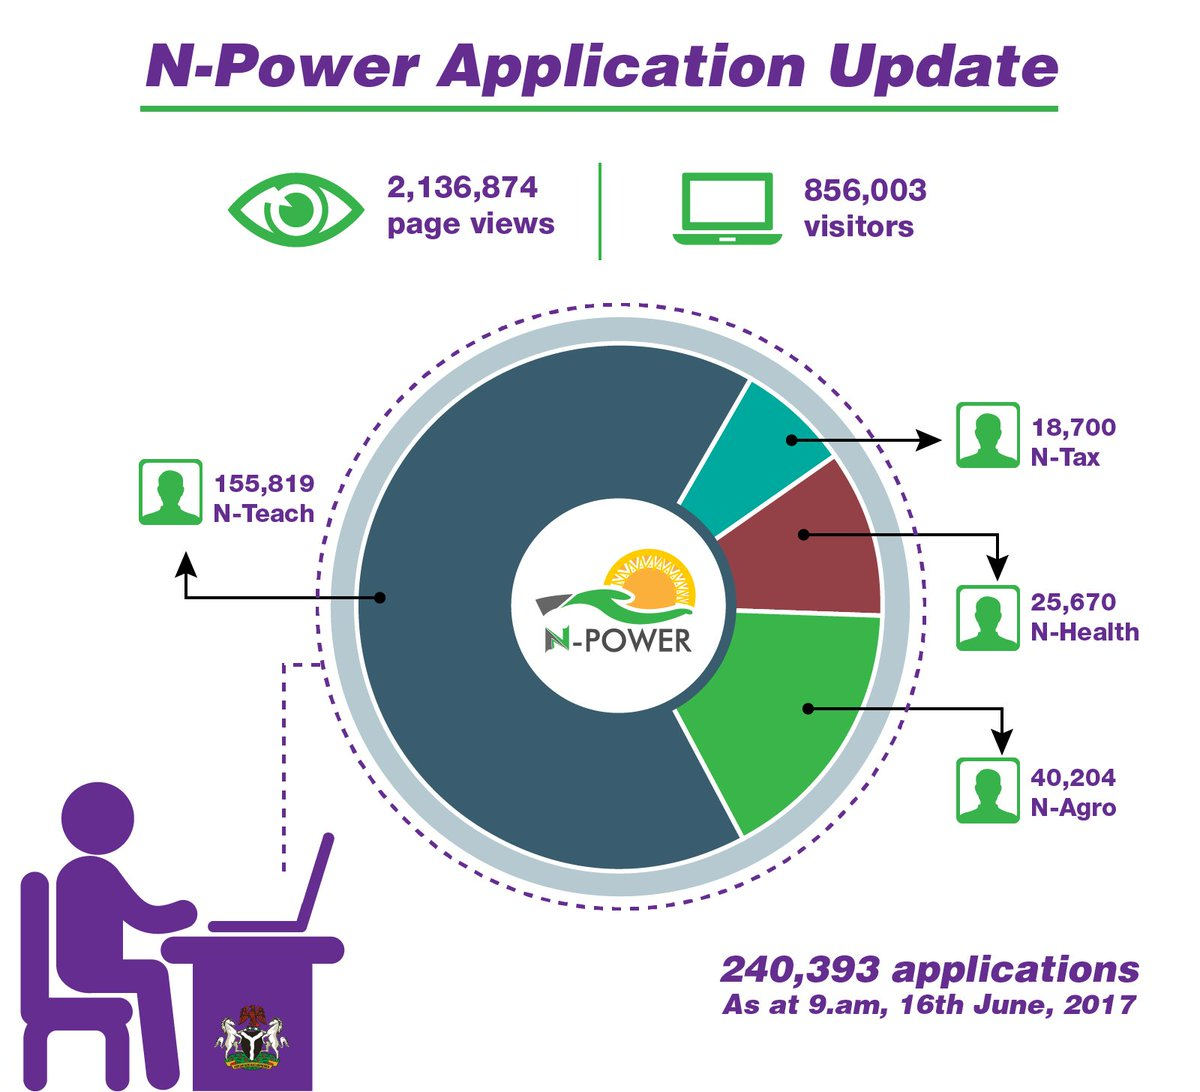 N power on twitter n power application update as at 9am june 16th n power on twitter n power application update as at 9am june 16th 2017 npowerng ccuart Image collections